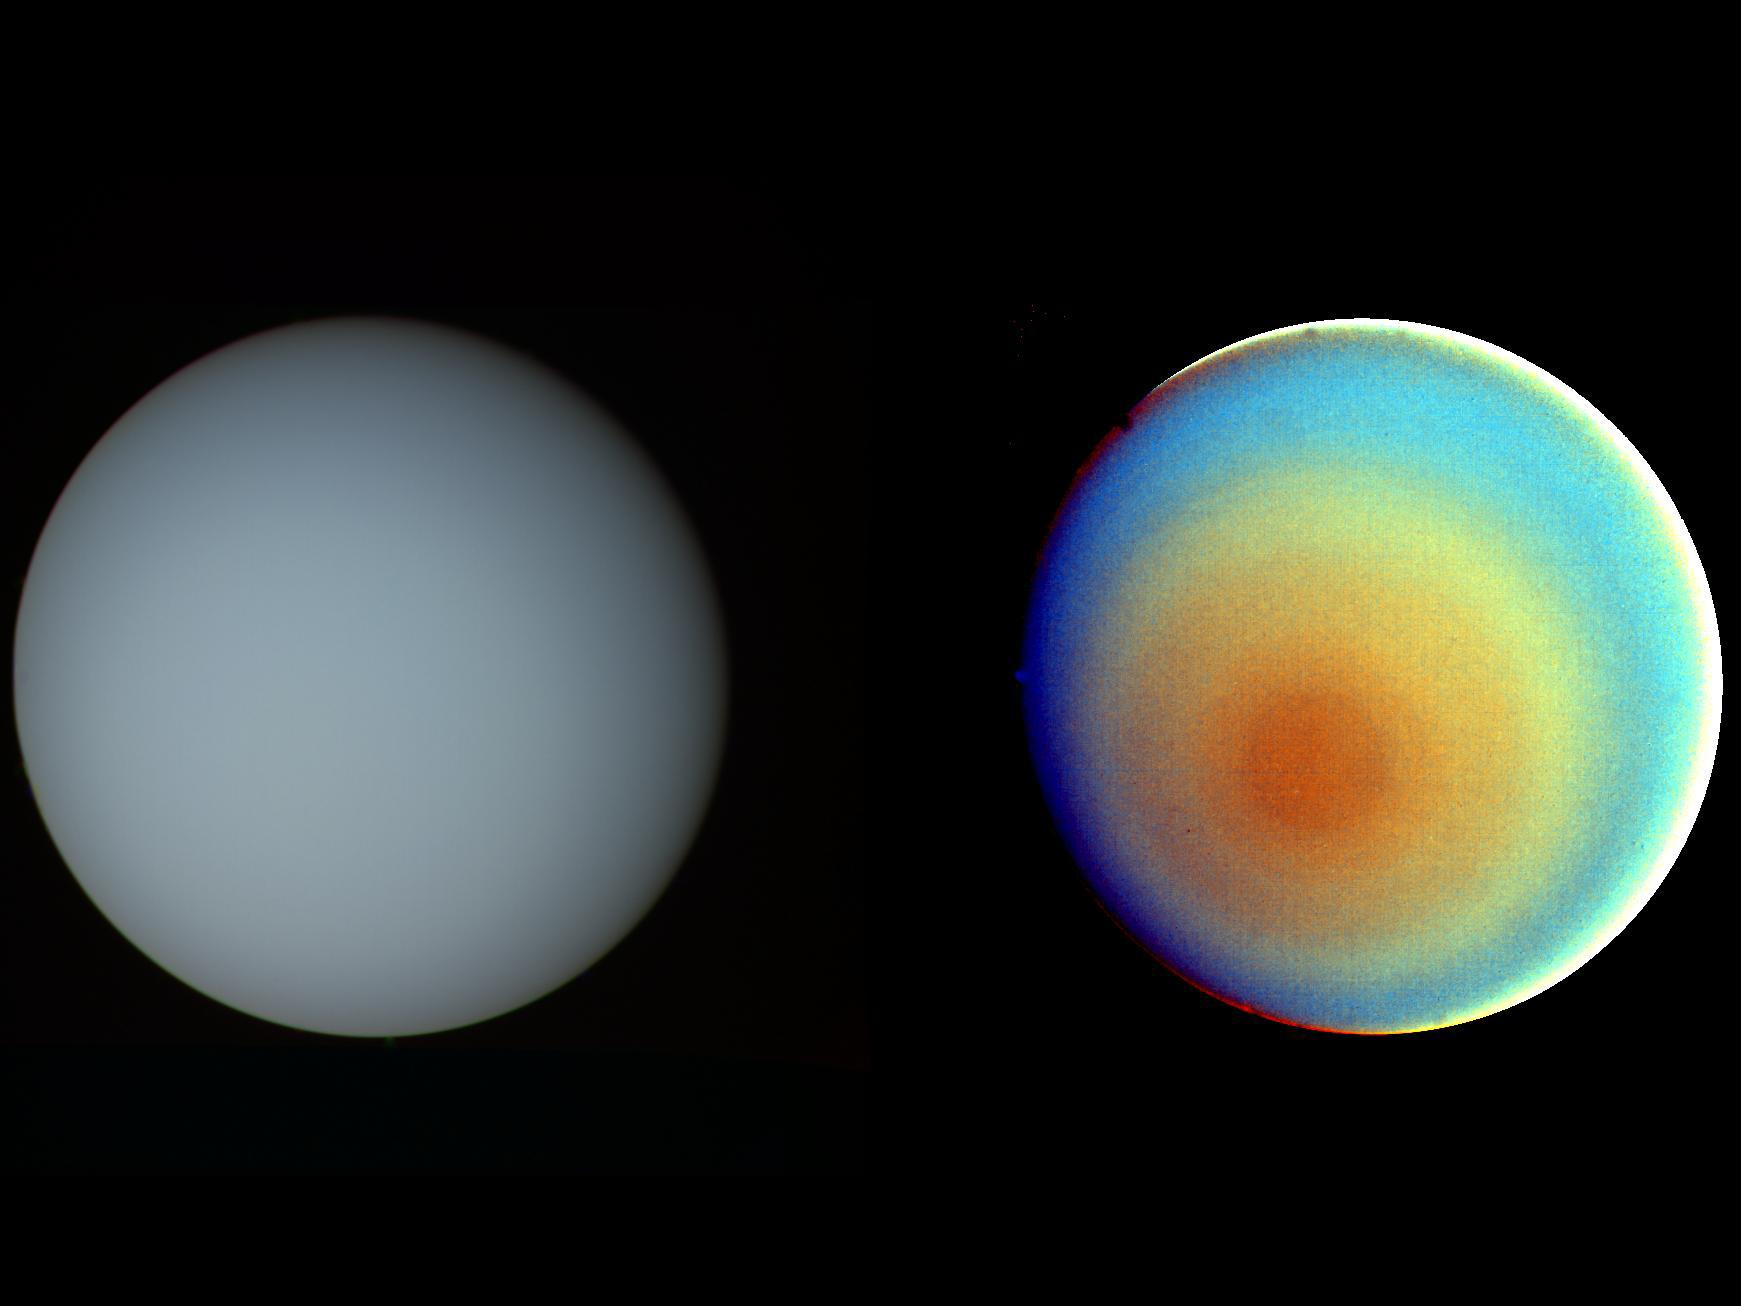 nasa photos of uranus - photo #23